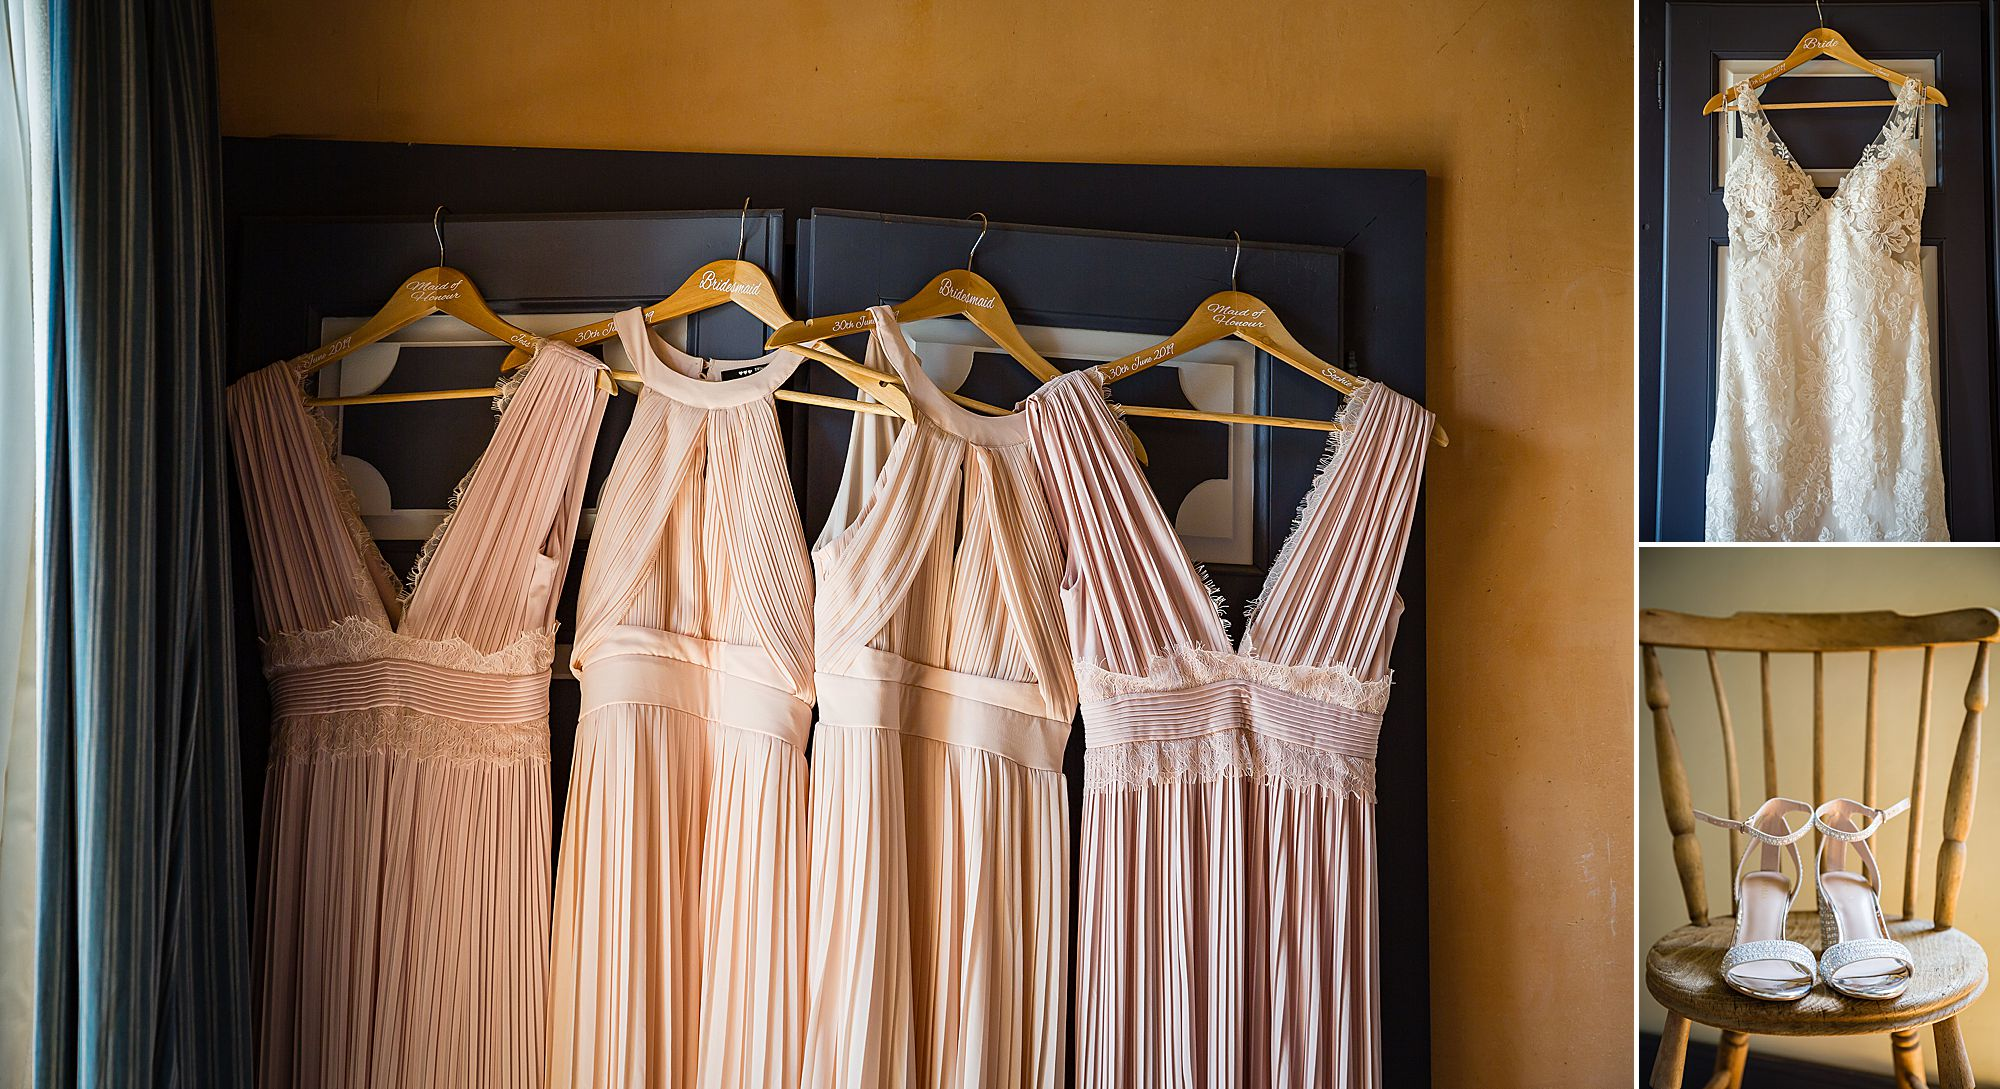 pink dresses hanging up